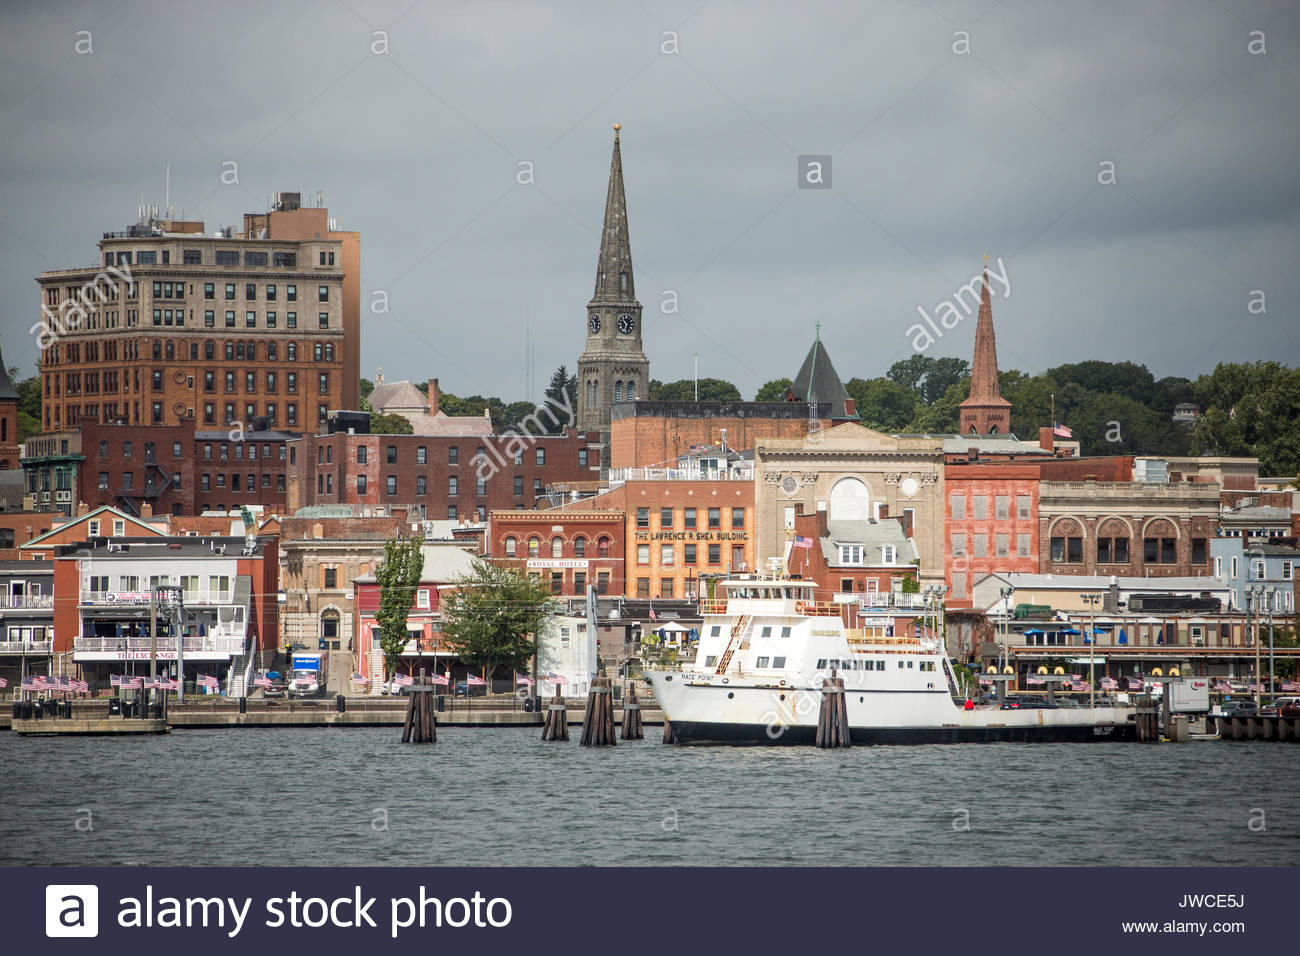 A scenic view of the waterfront in New London,Connecticut,under a cloudy gray sky. - Stock Image